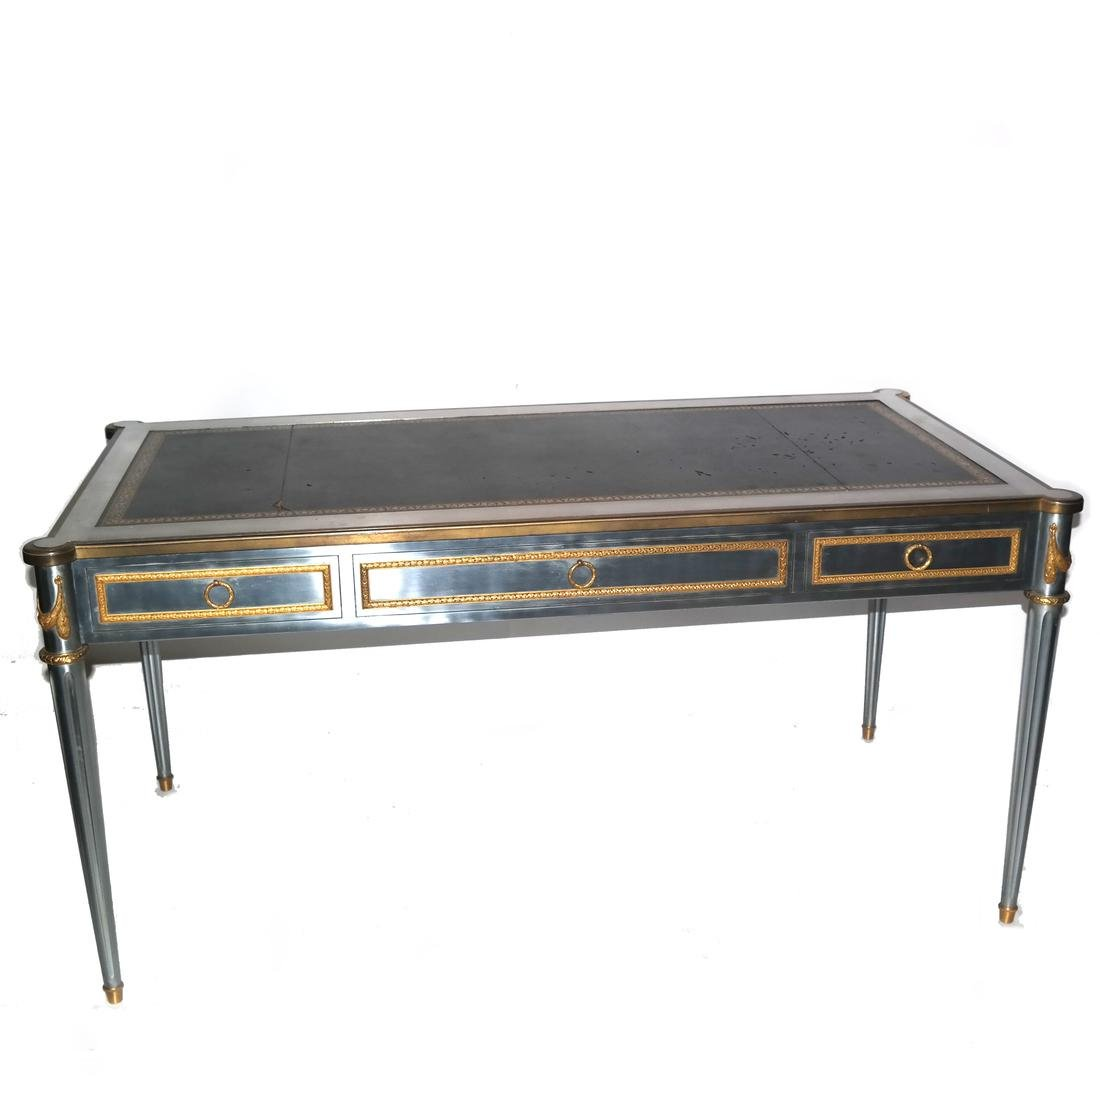 French Steel and Bronze Bureau Plat